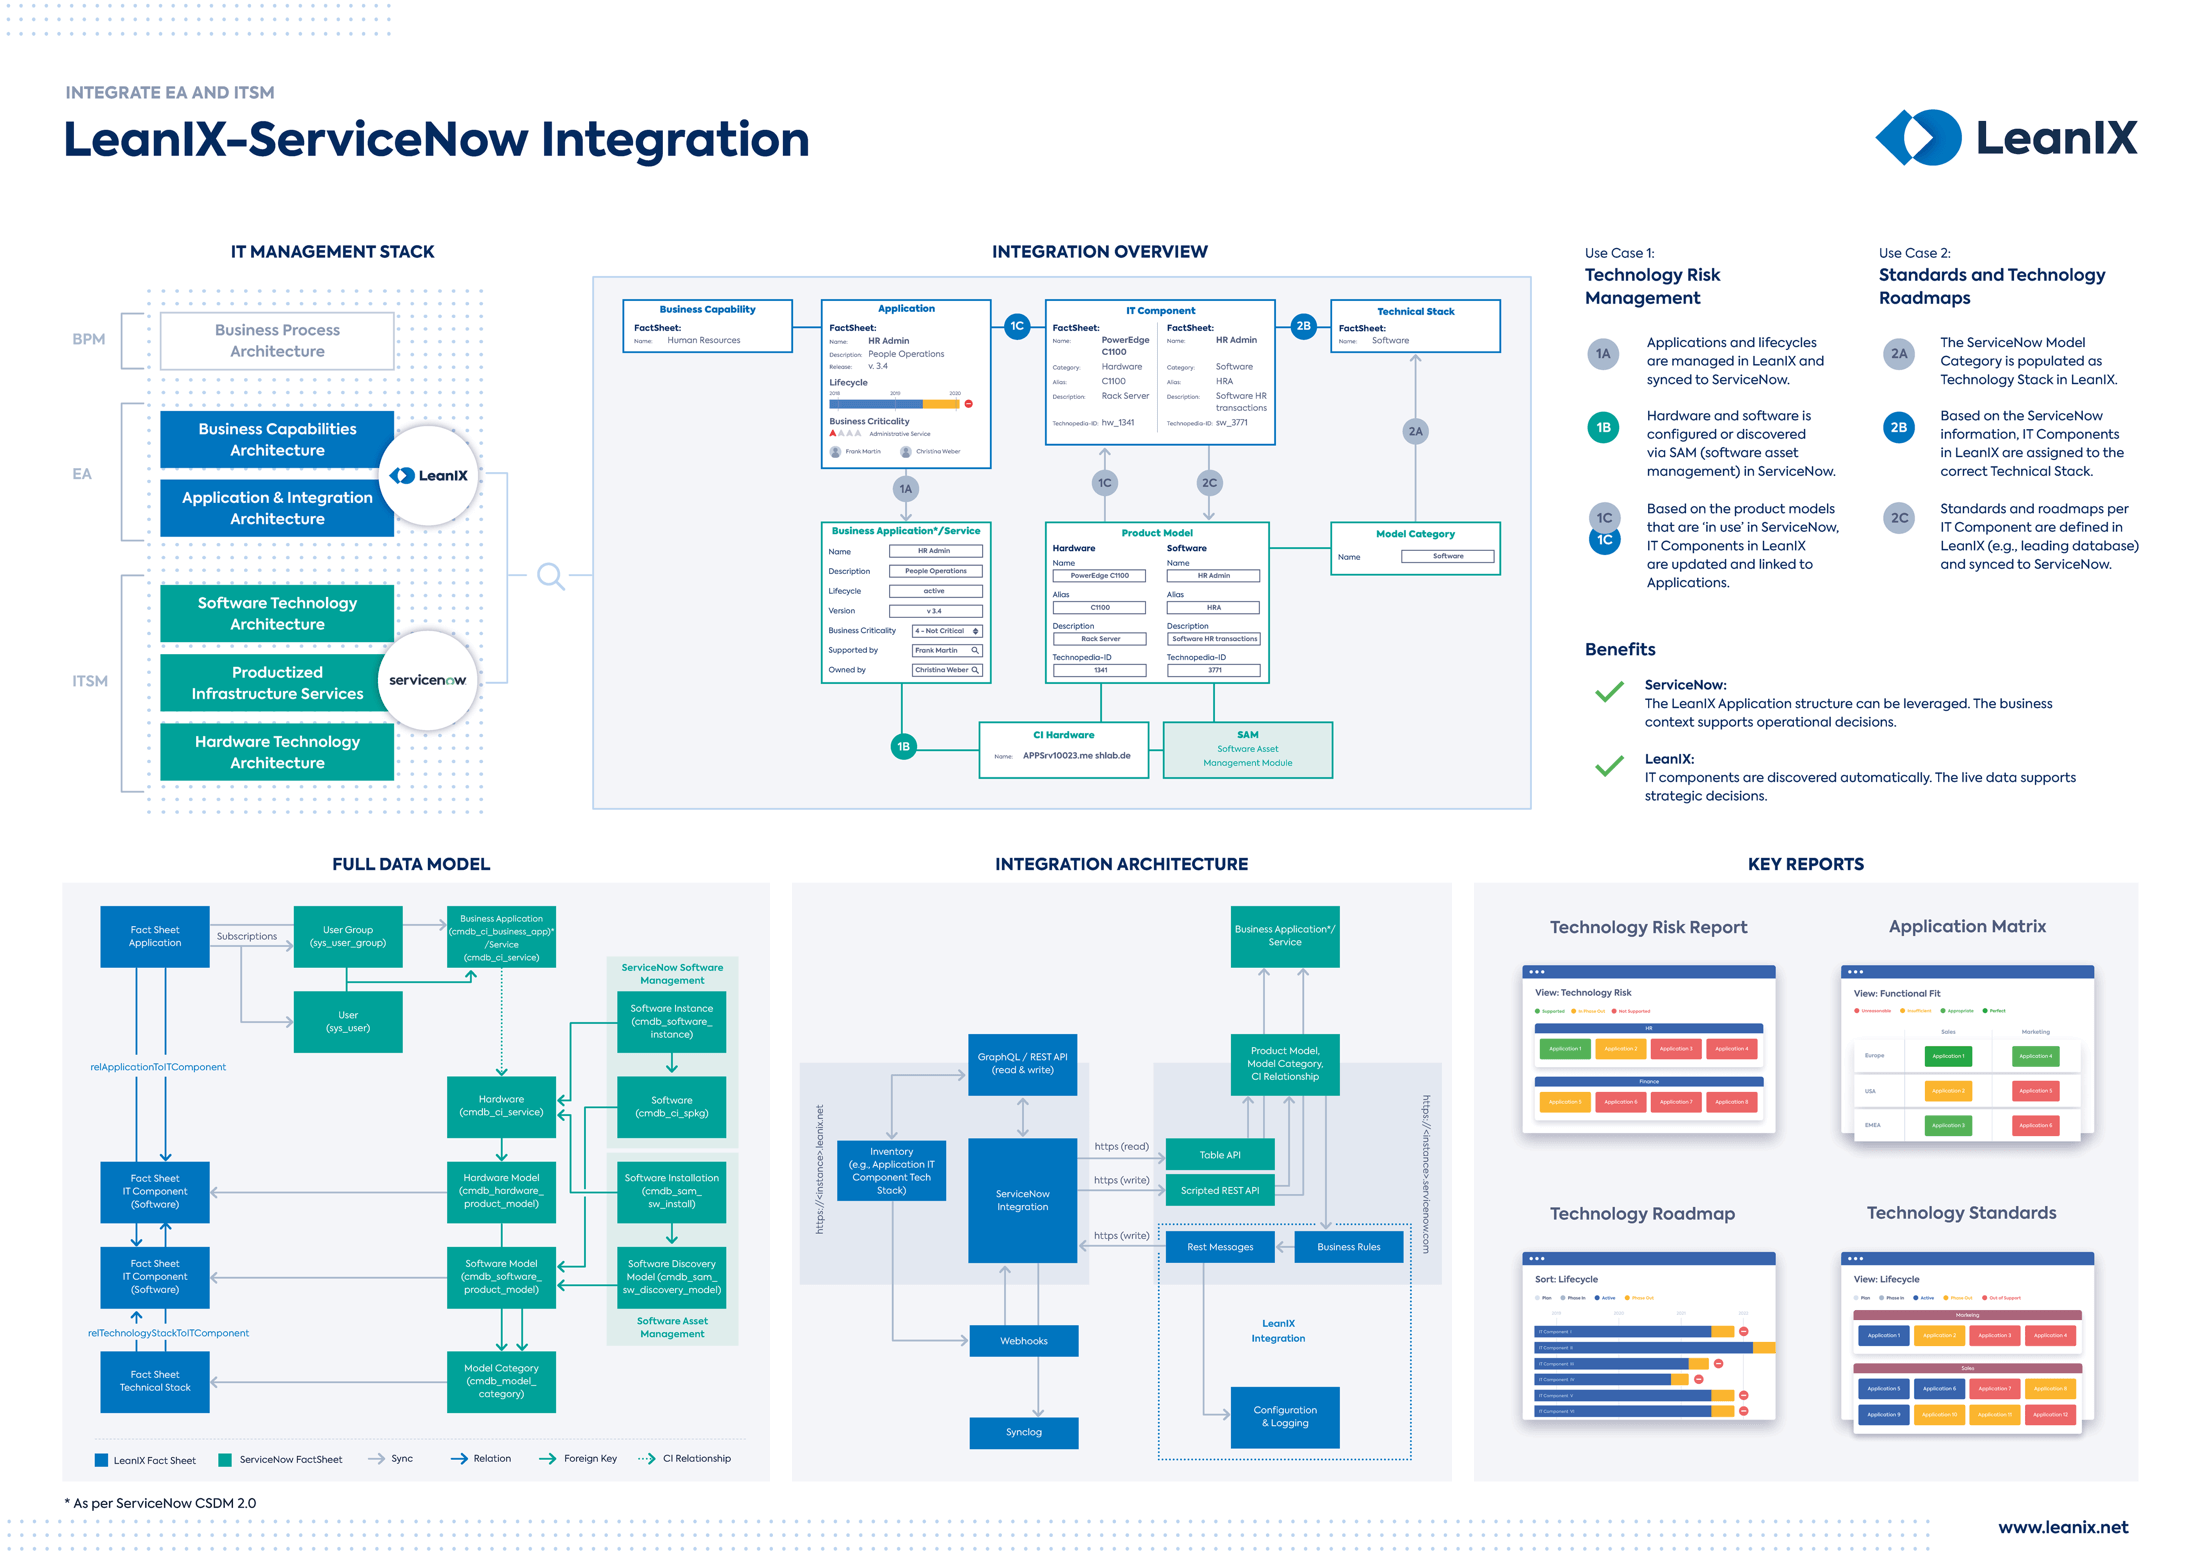 leanix-servicenow-integration